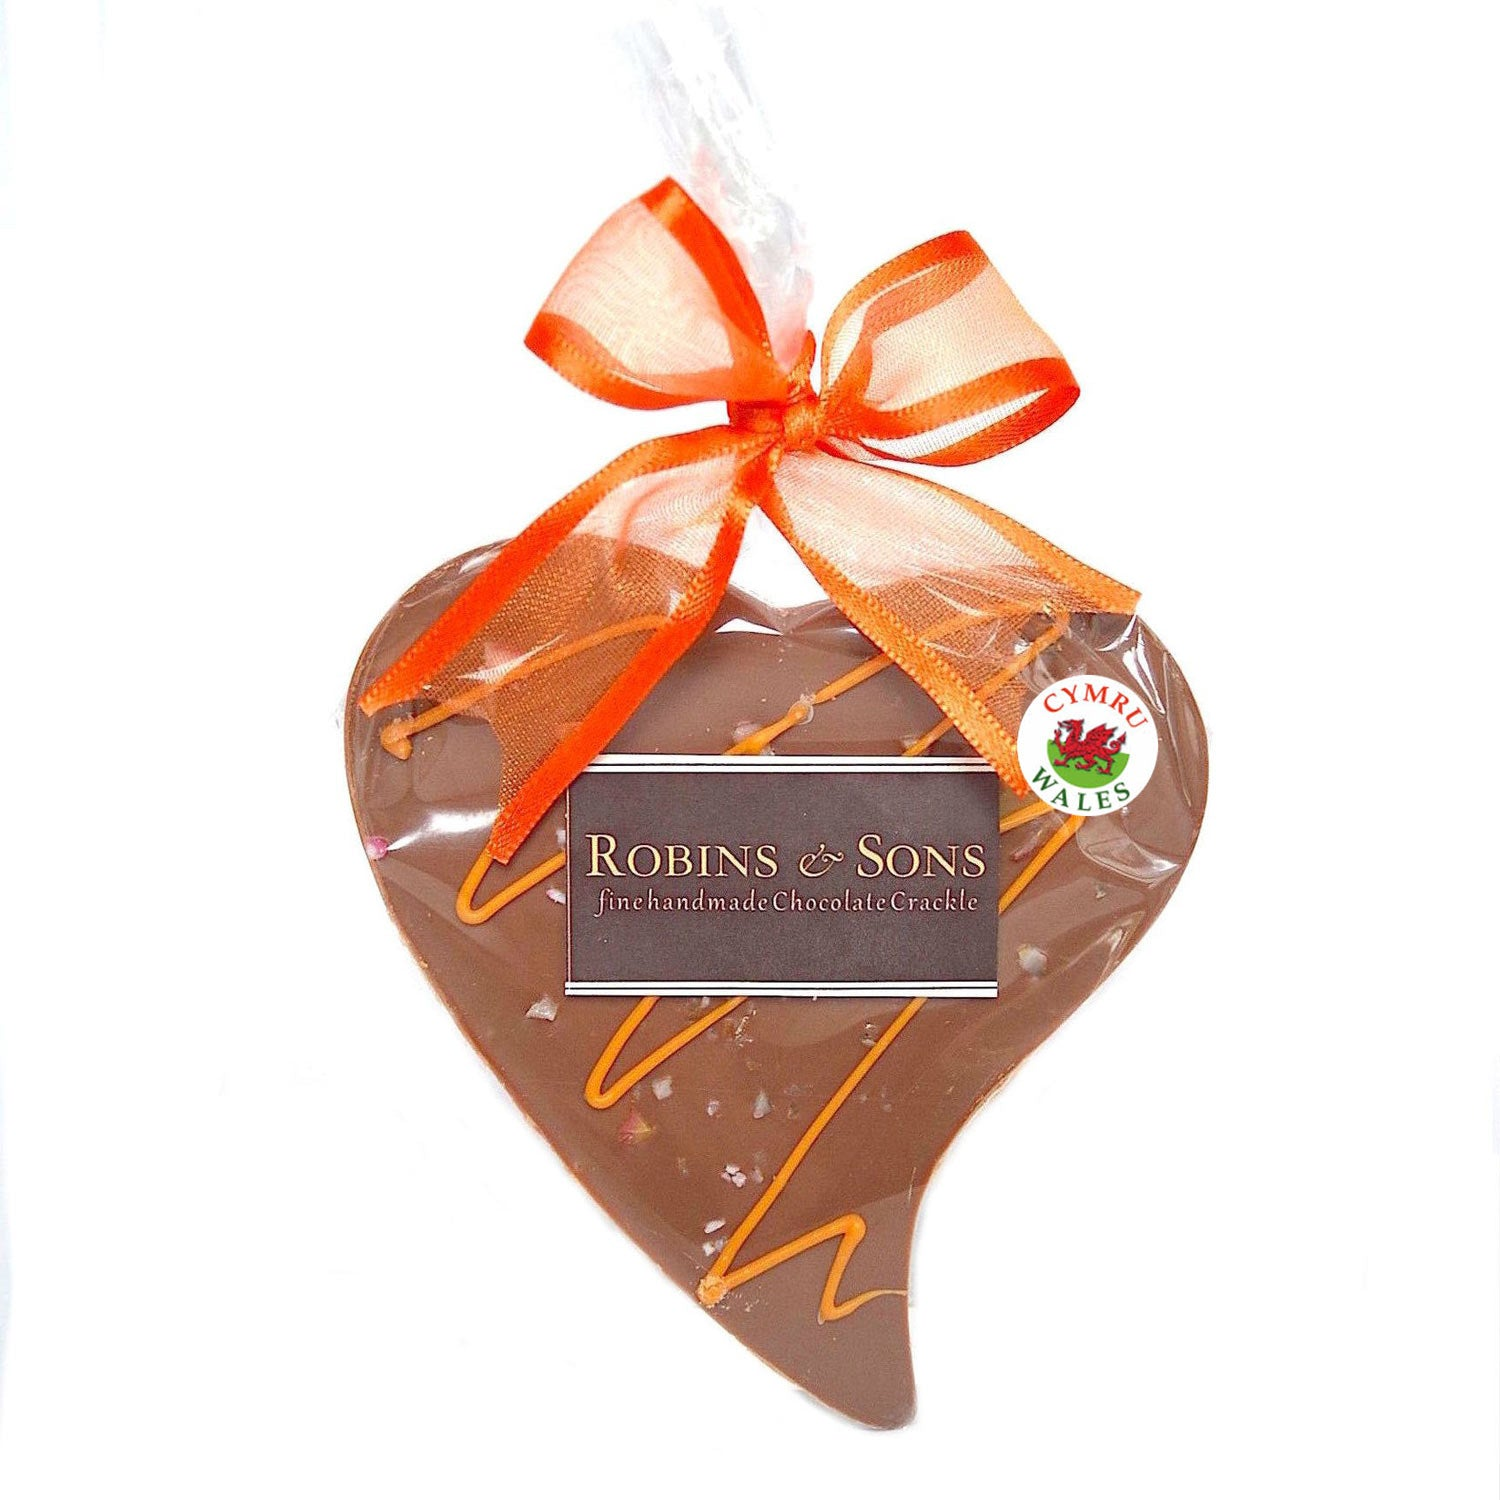 Chocolate Heart - Handmade in Wales - Orange Crackle - Milk